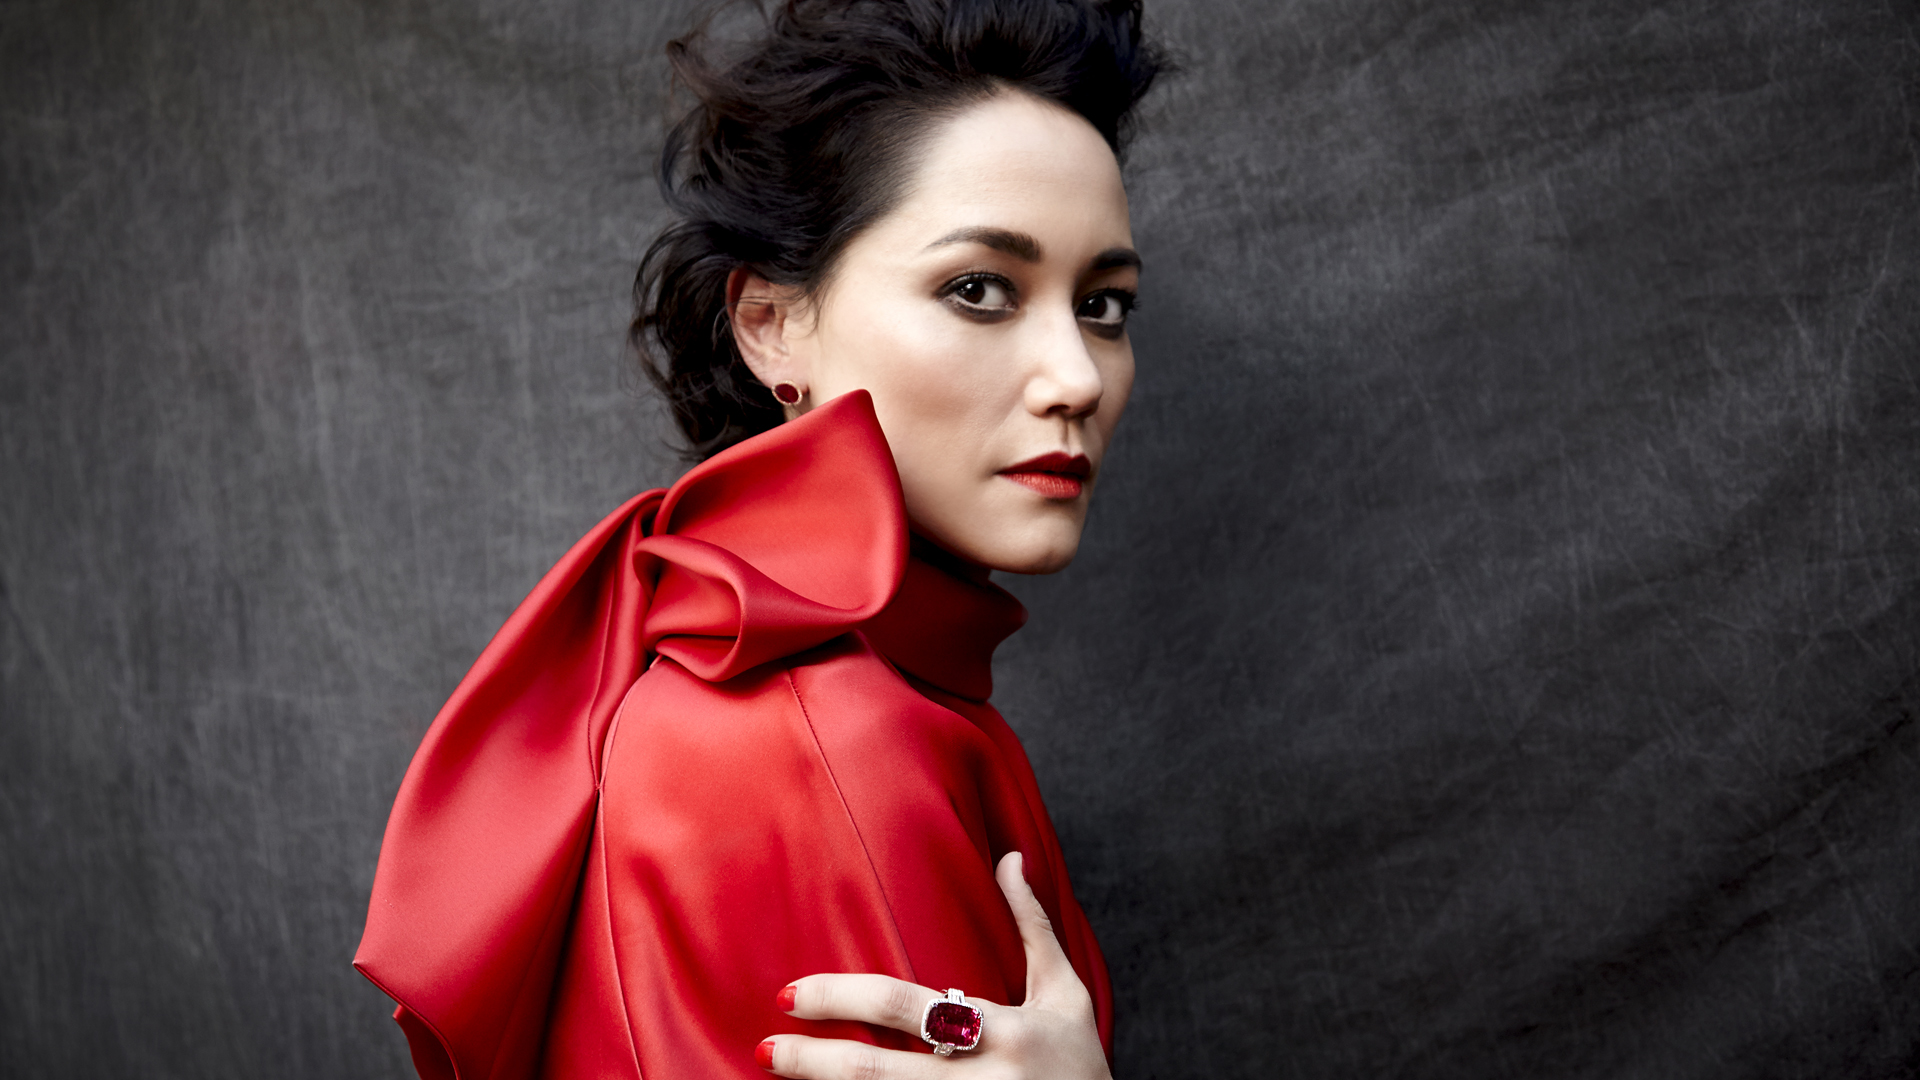 sandrine holt actress wallpaper 65796